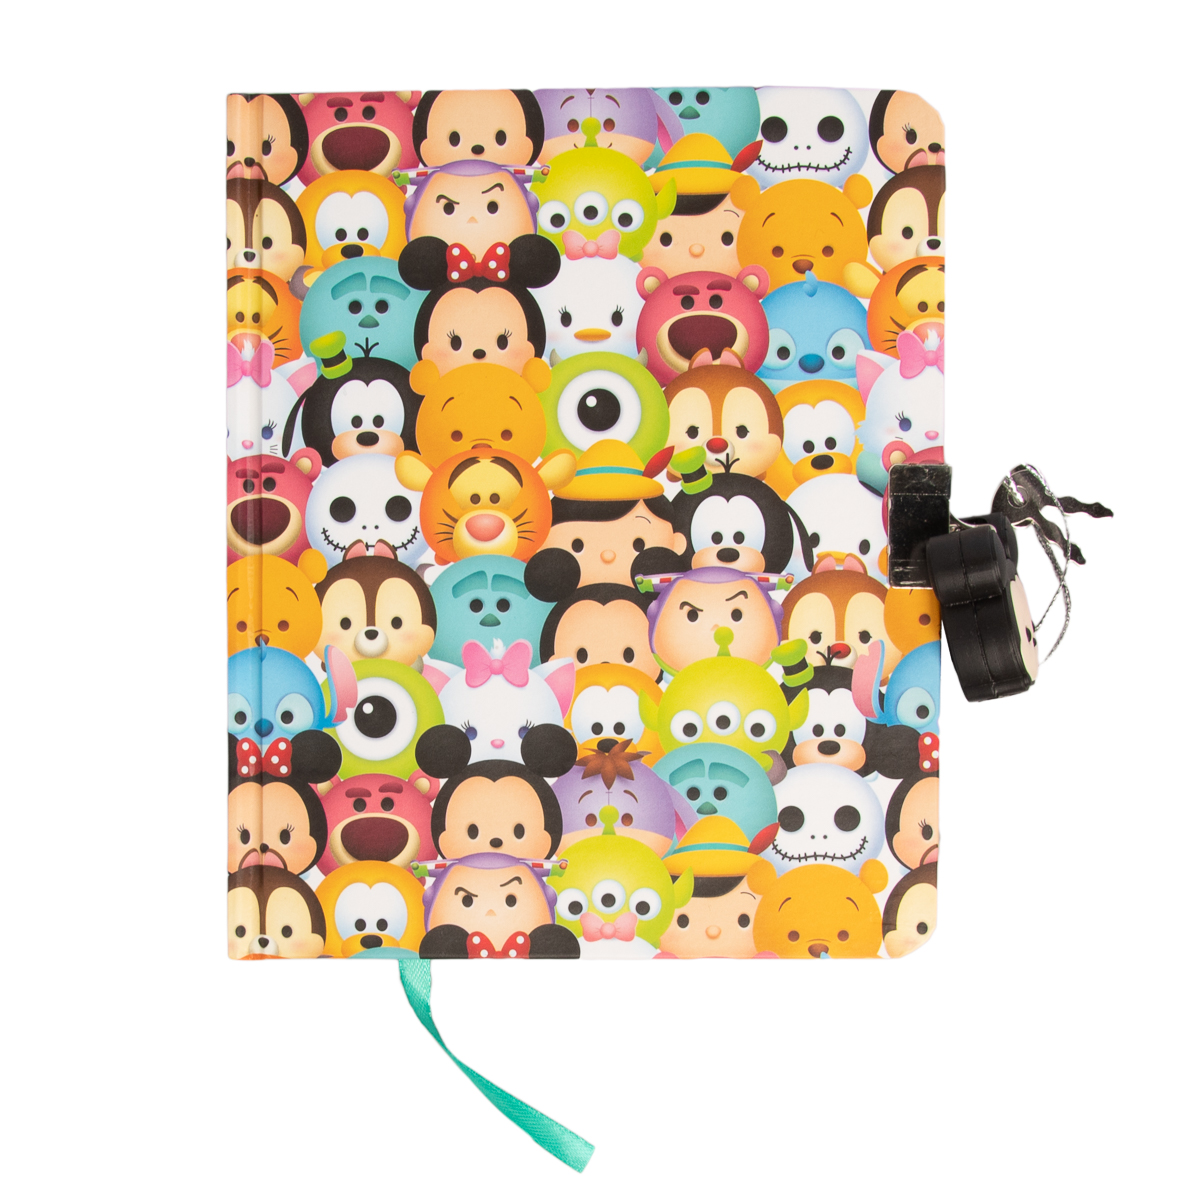 Fun89 Disney Tsum Tsum All Characters Diary with Molded Disney Lock Innovative Designs